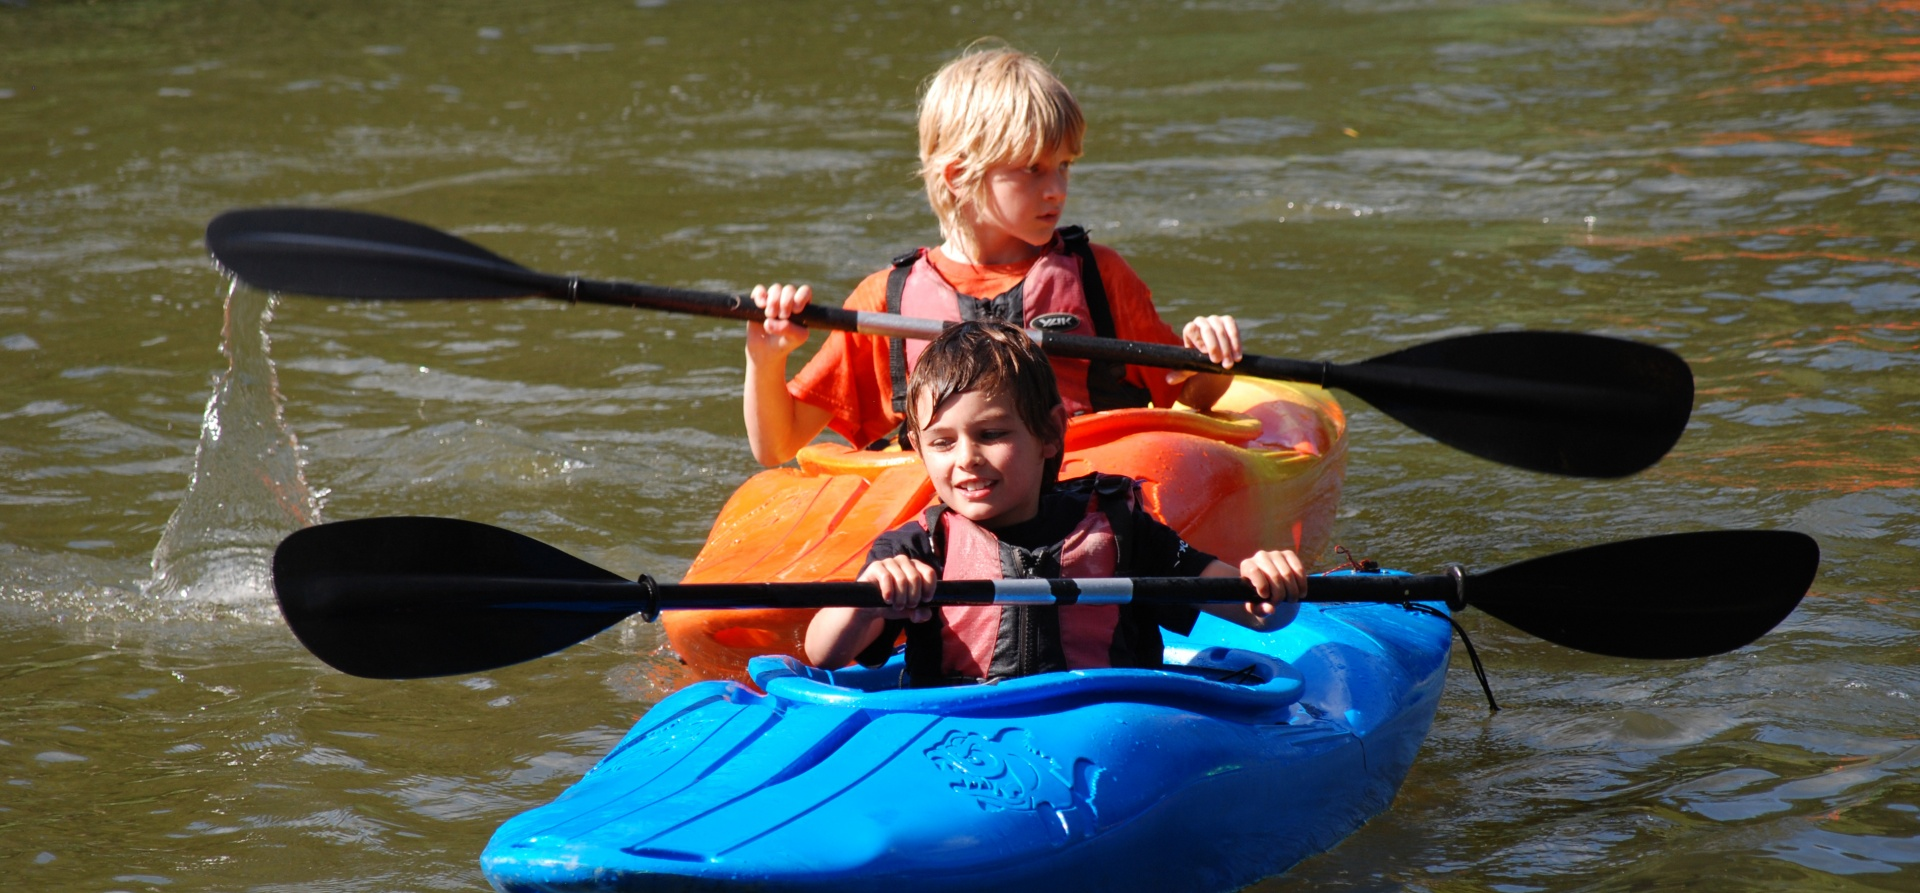 Half Day Kayaking Lesson - Warwickshire-4